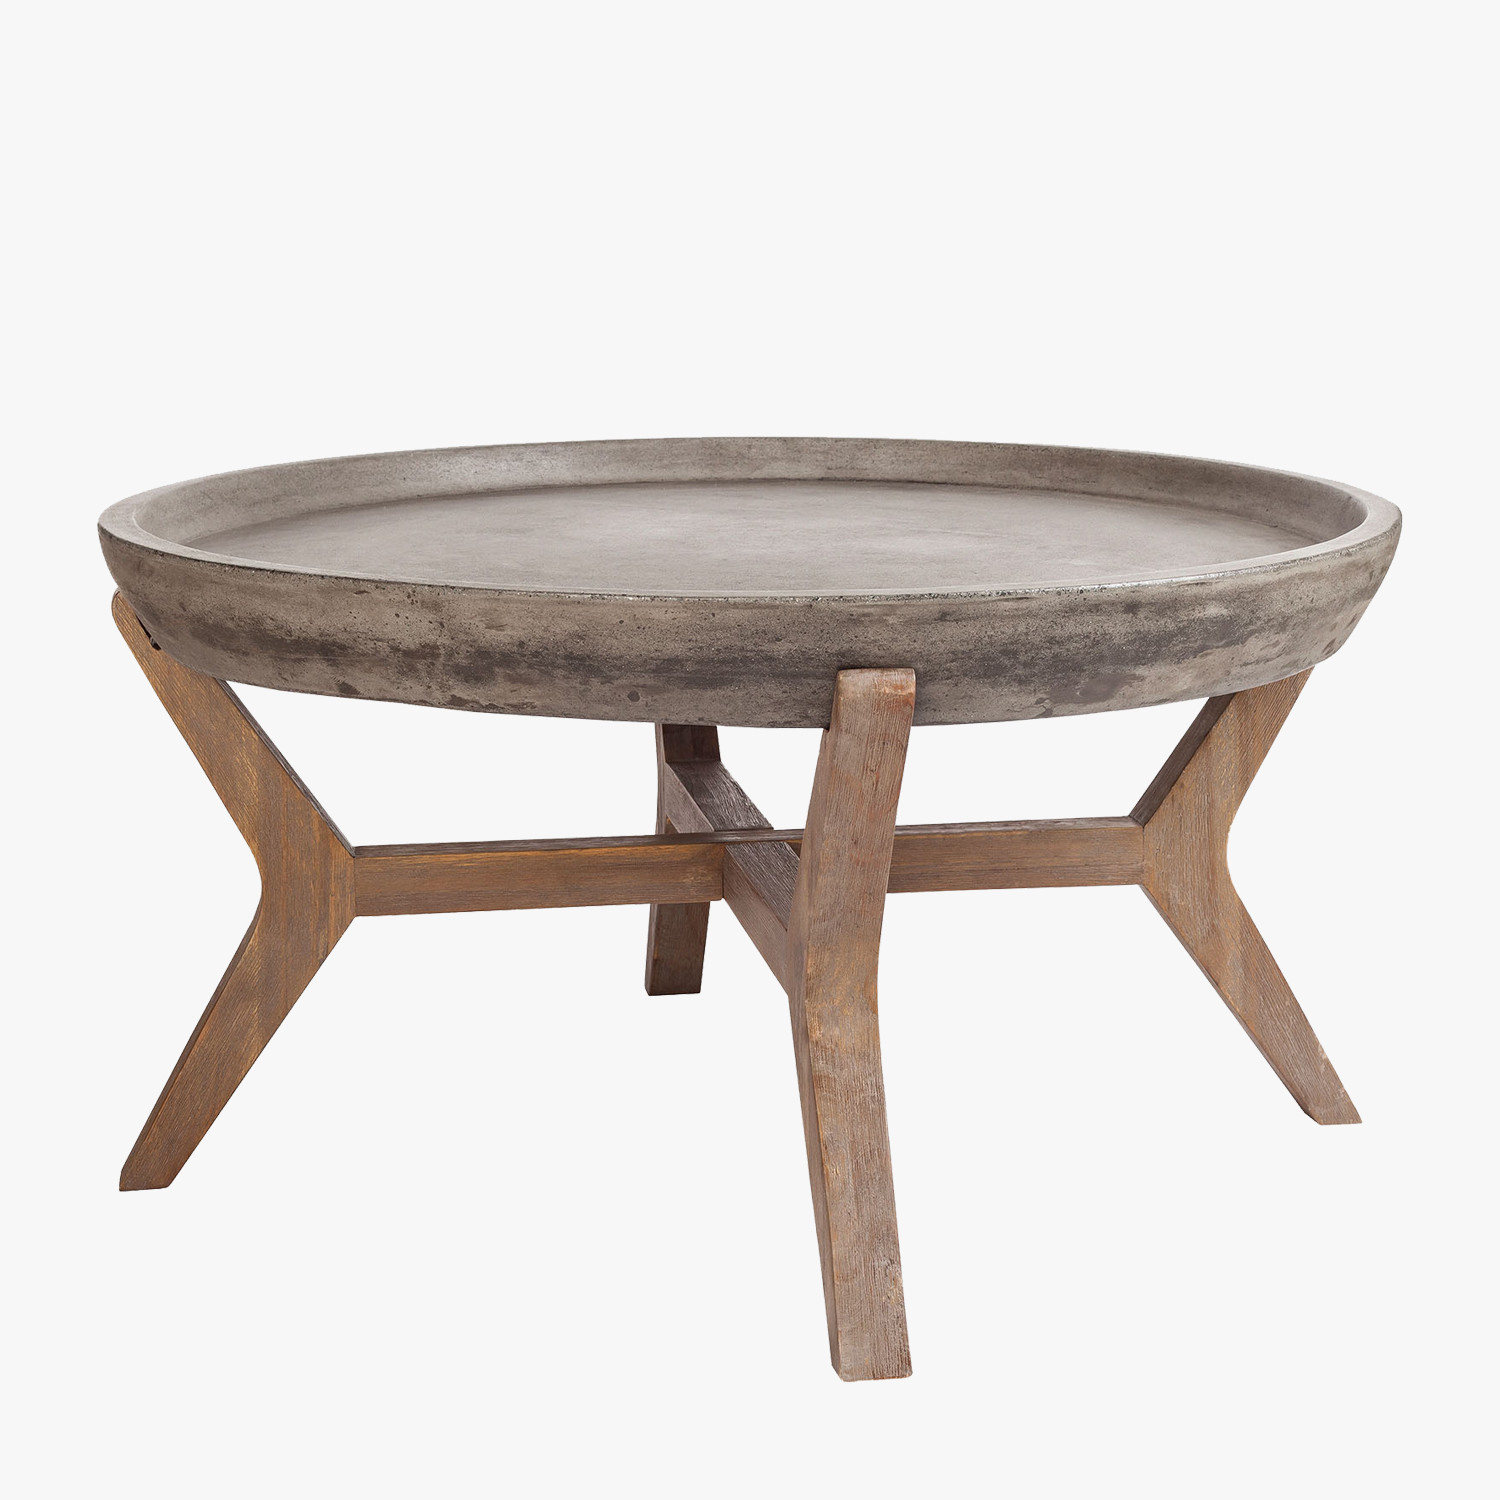 tulu concrete top coffee table accent tables dear keaton wood parasol stand astoria chair entryway chests and cabinets copper side low for living room metal small mosaic patio